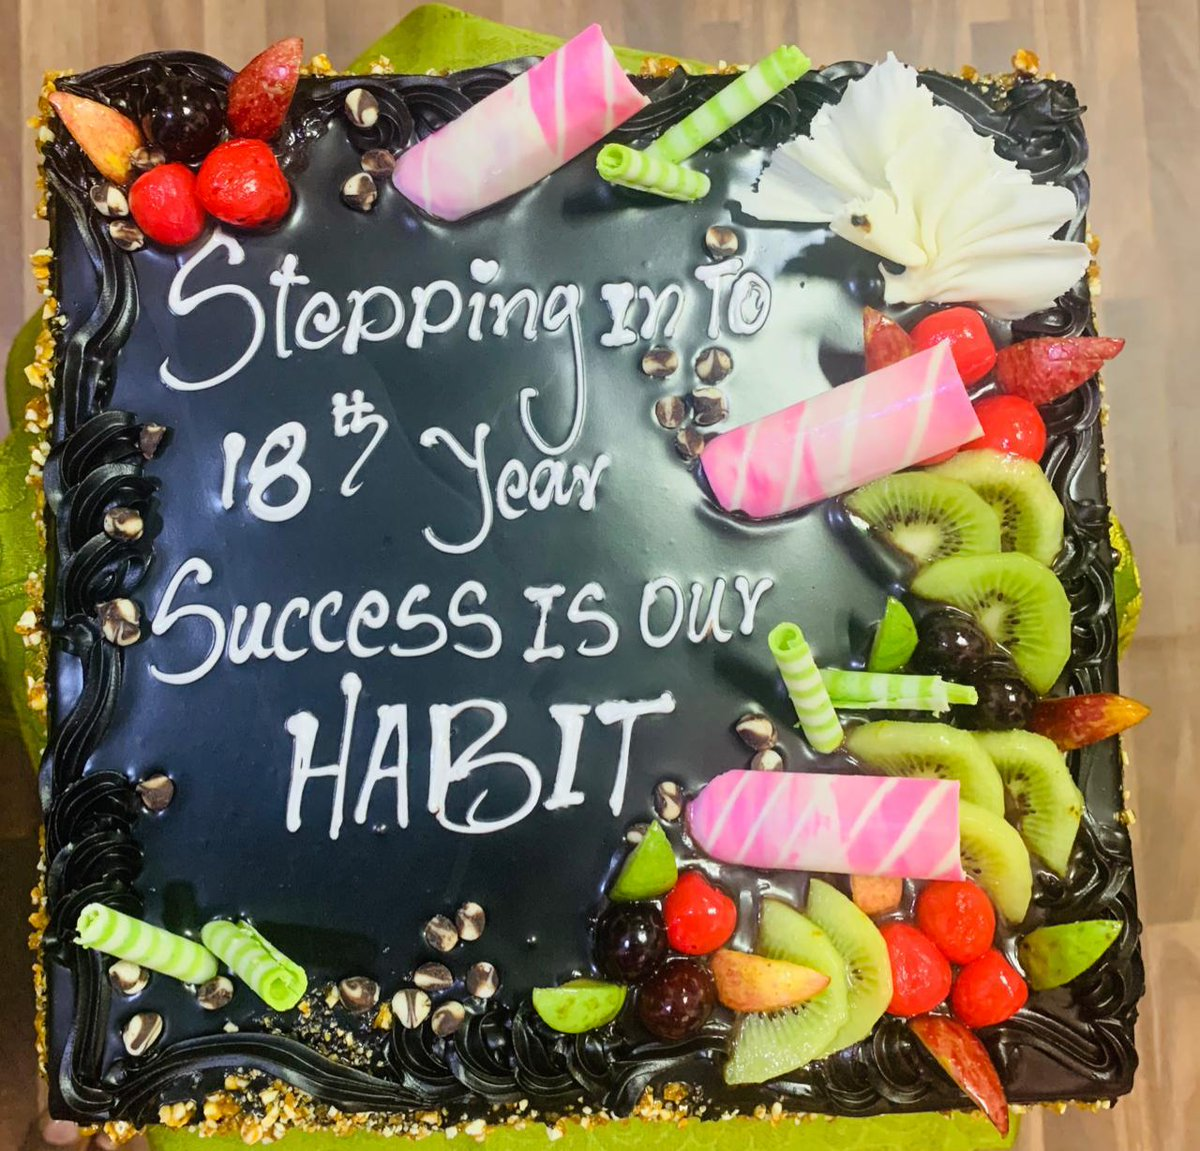 "INNOKAIZ DAY ! 17 years of Business Excellence !  Now Stepping into 18 years of TRUST & CONFIDENCE... ""Success is our Habit"" Keep it up Team INNOKAIZ. @kaizensukumar @Duraira20186983 @MadheswaranAjay   #INNOKAIZDAY #INNOKAIZ #INNOKAIZGIFTCARD #rewardingexcellence #REWARD"